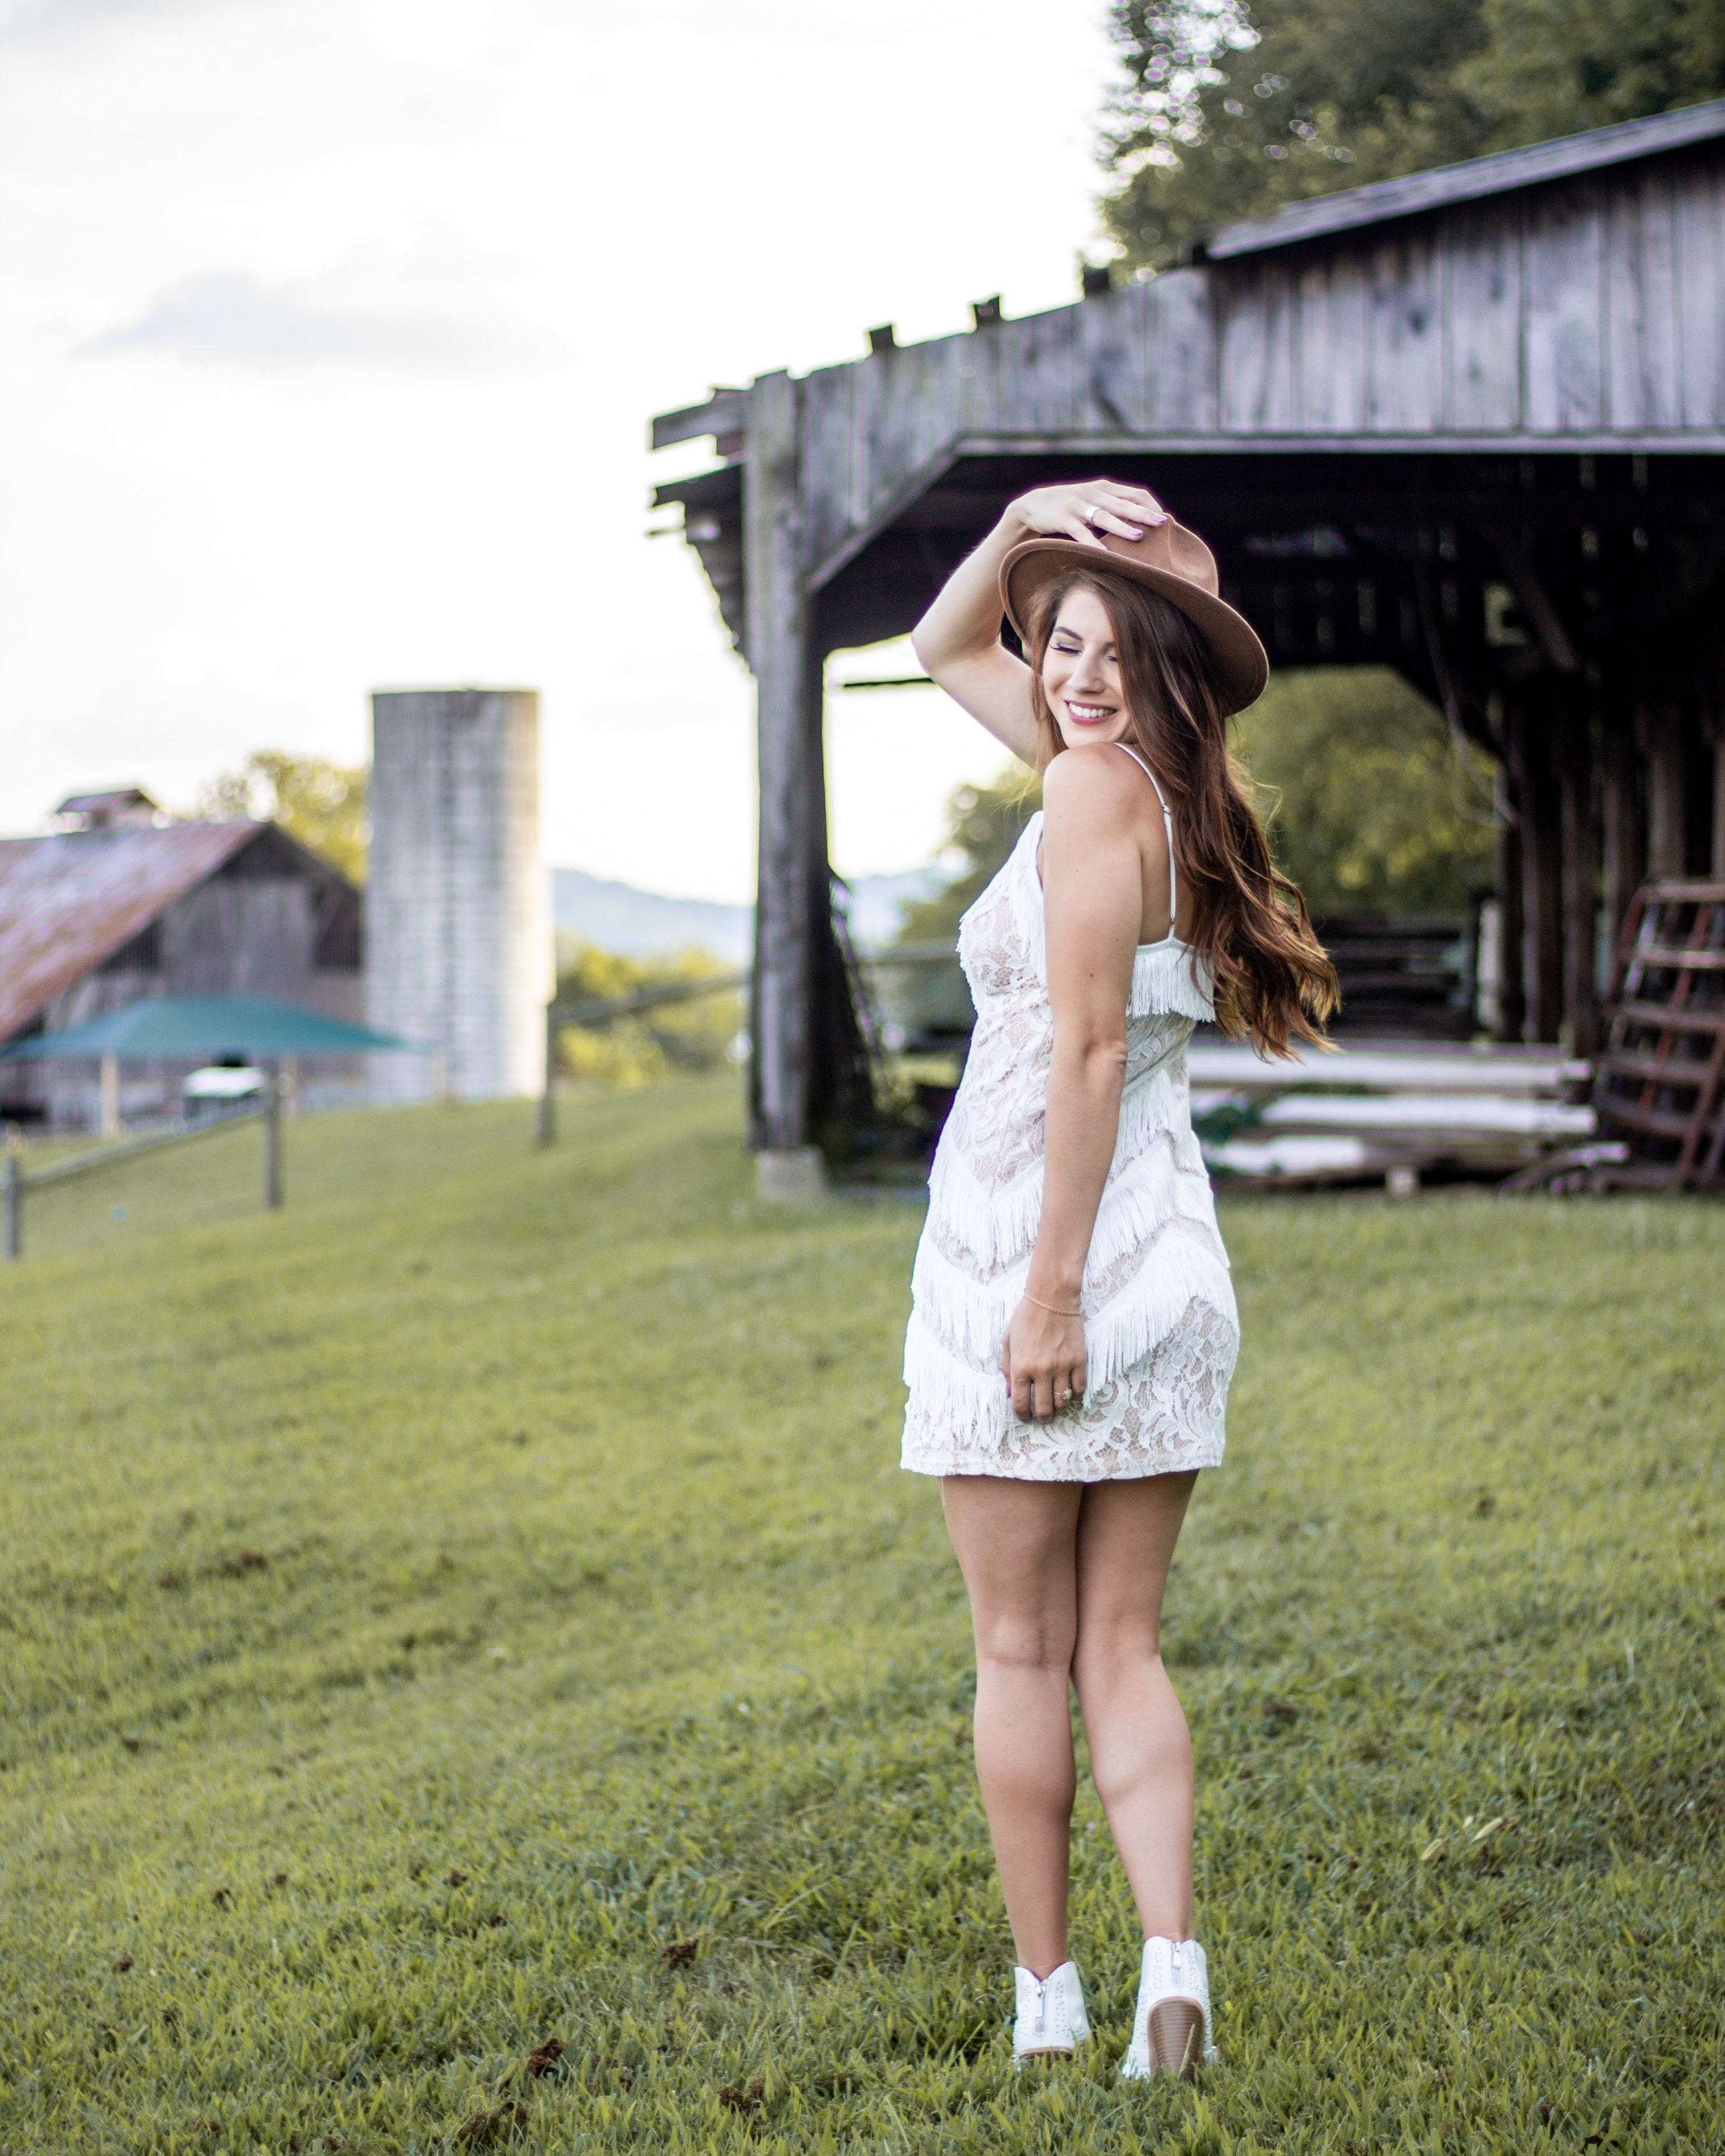 White dress with white boots